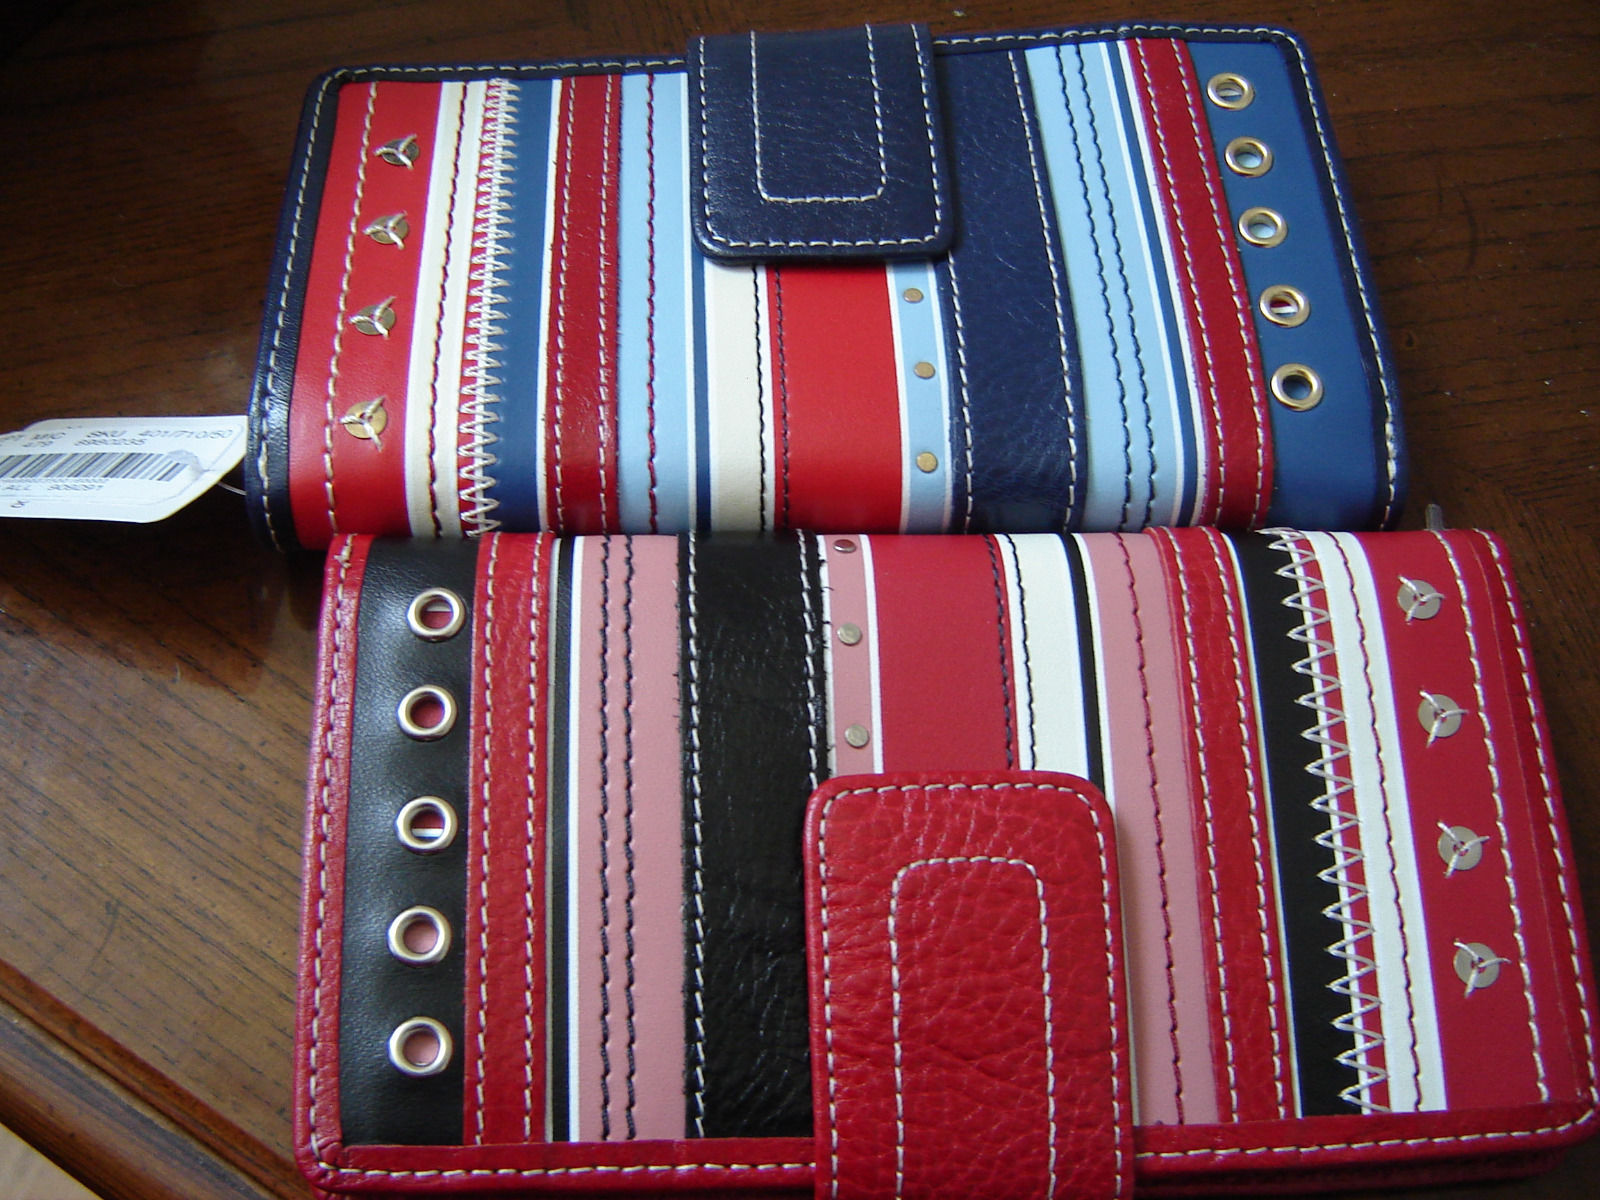 FOSSIL WOMEN'S 1 WALLET GENUINE 100%LEATHER RED/BLACK MULTI STRIPED NEW image 5